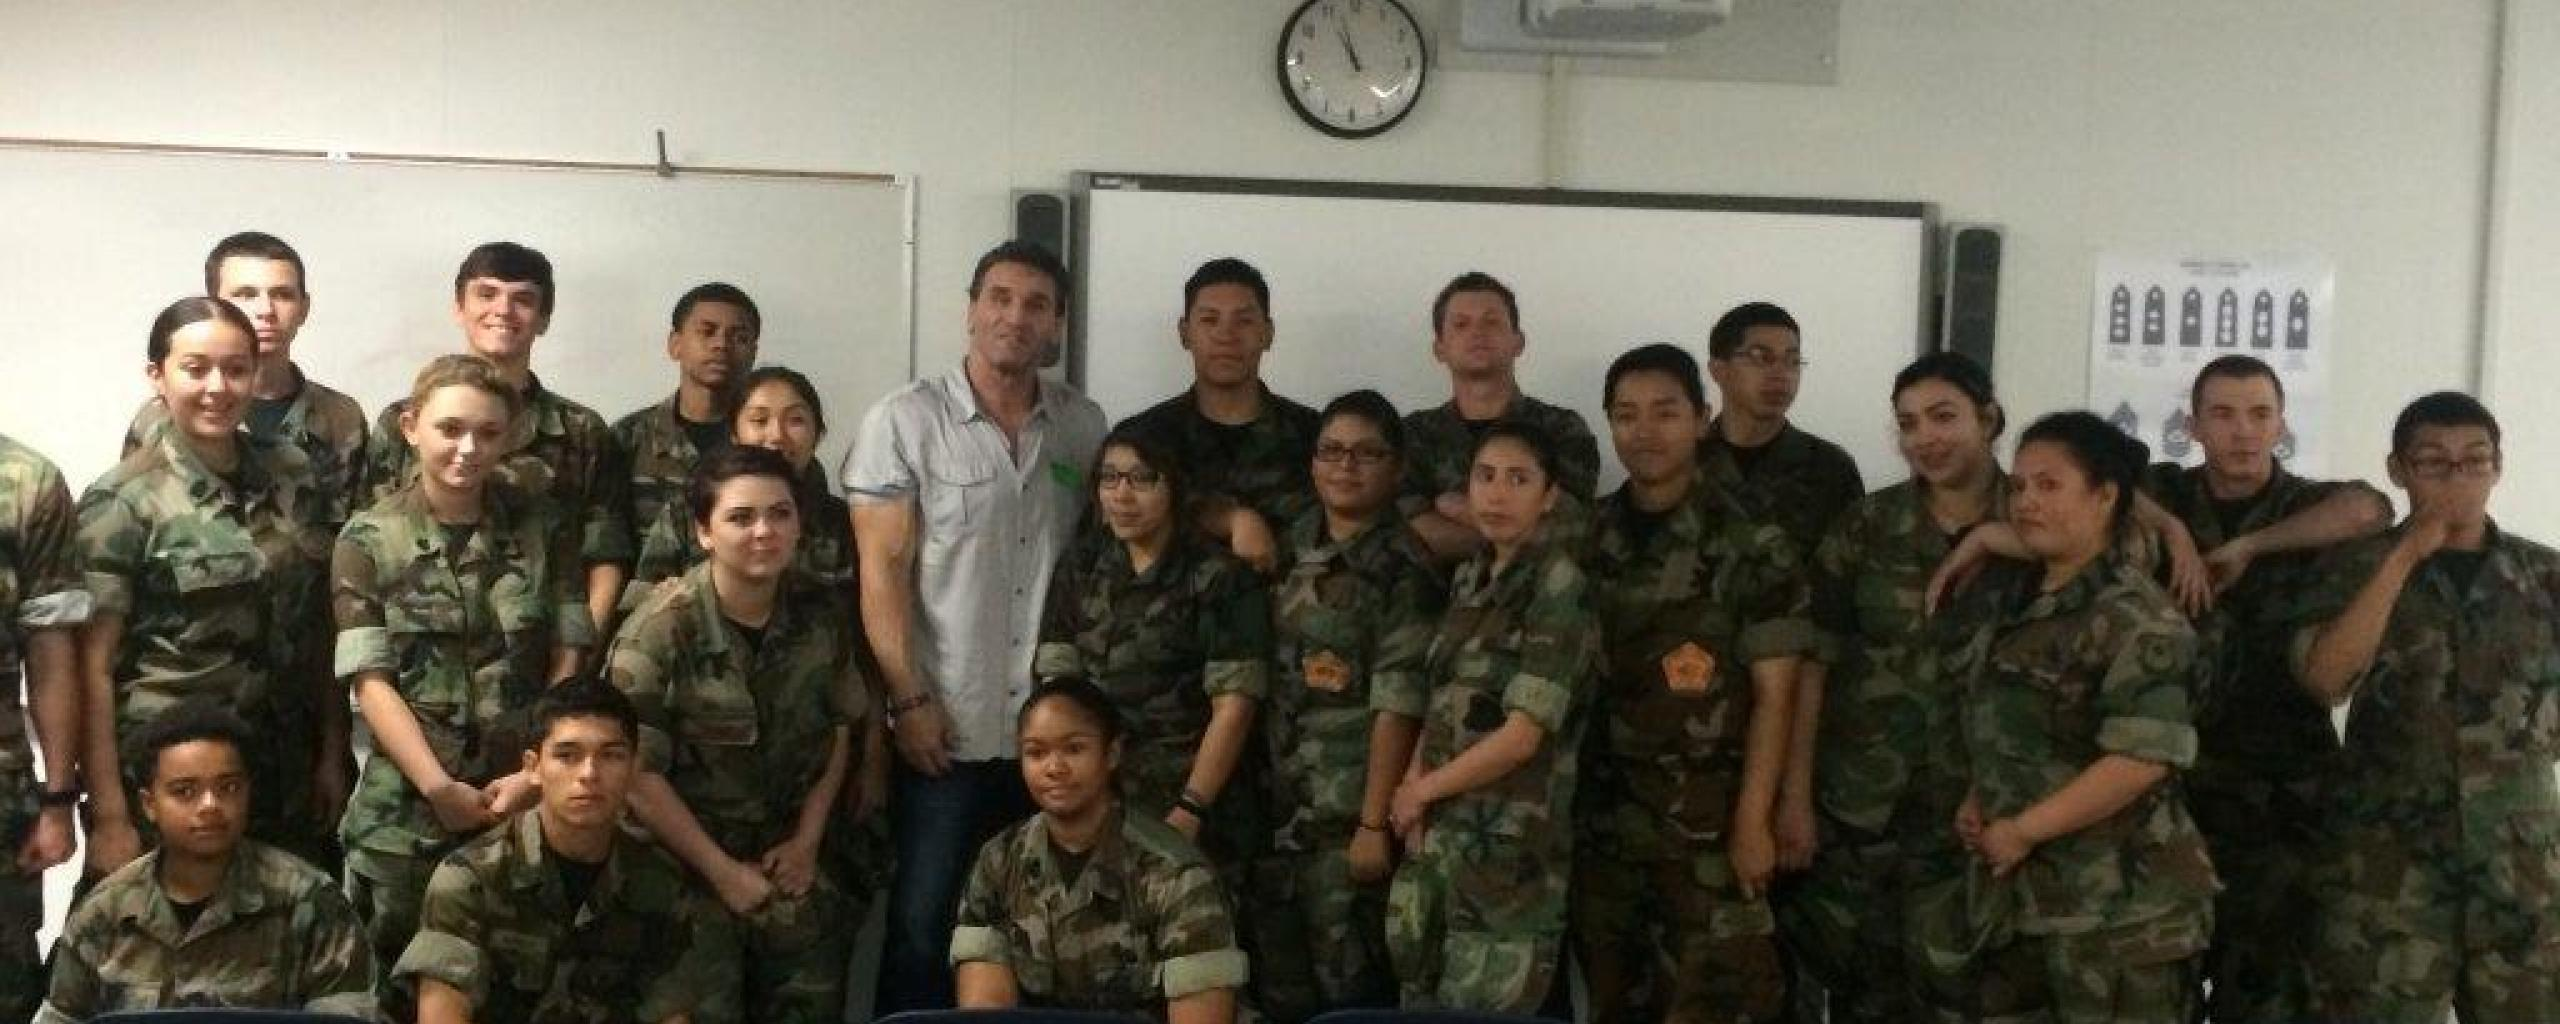 character education students standing with advisor in classroom